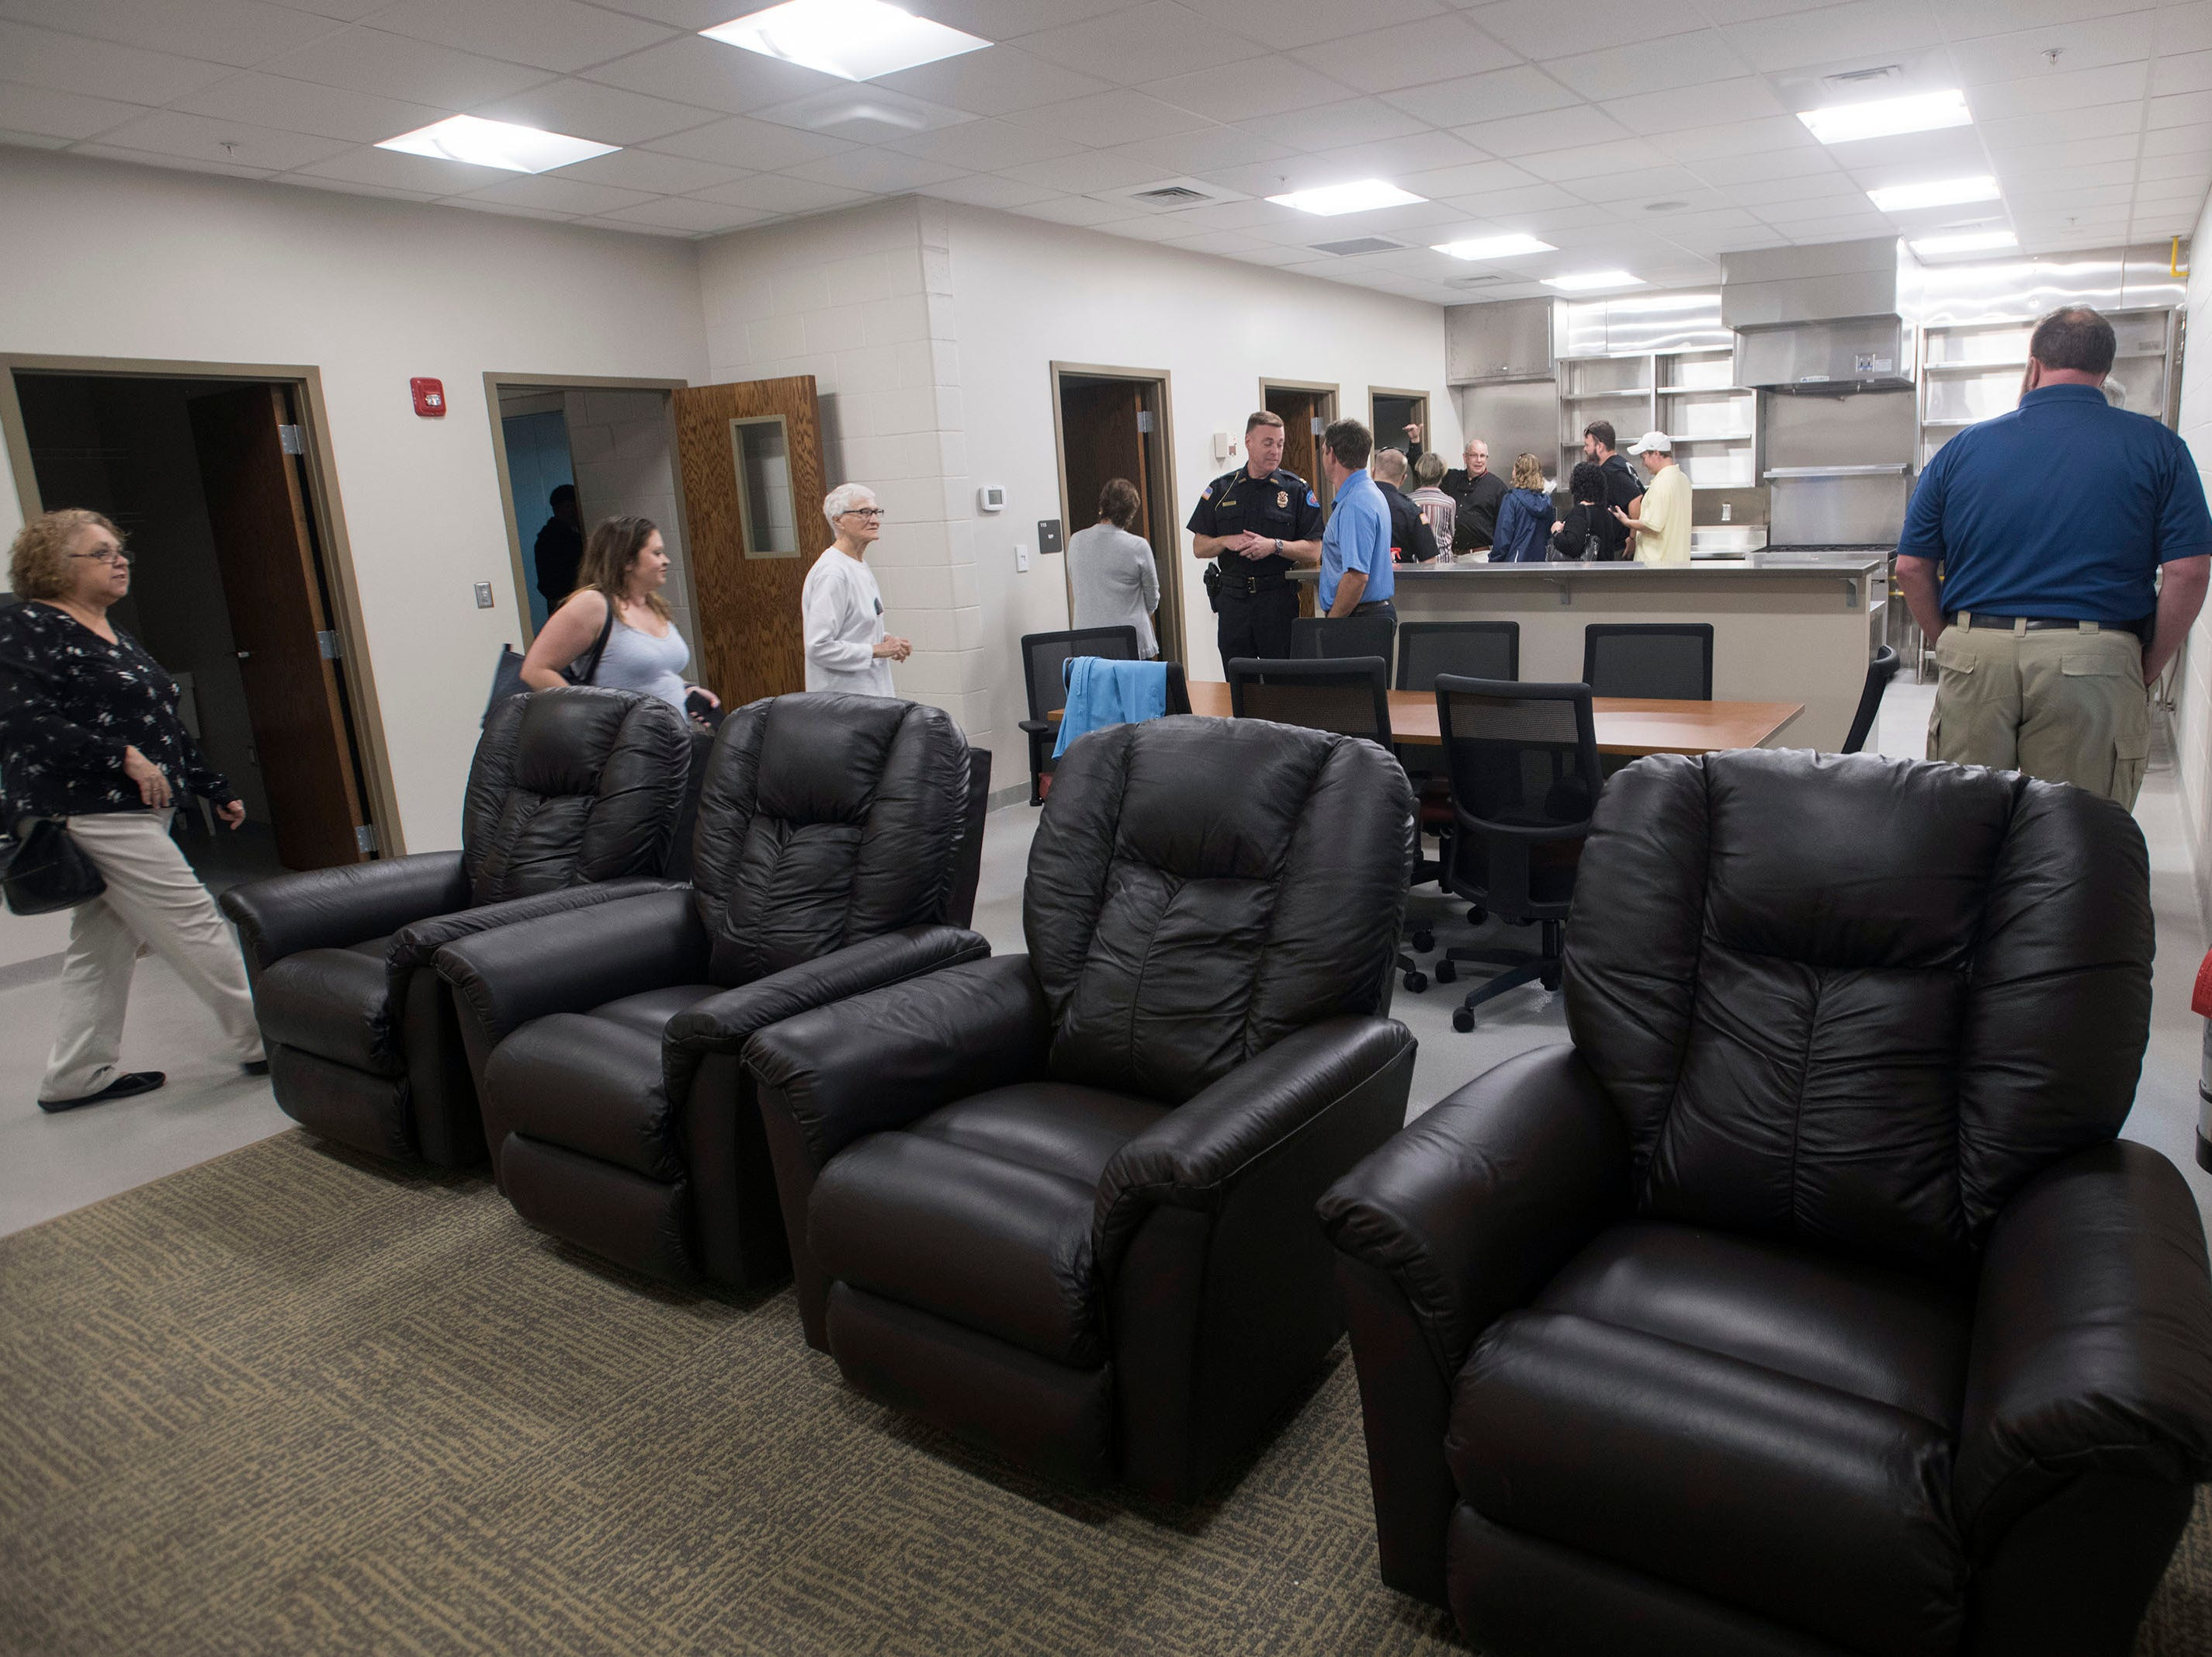 Visitors get a look at the shared living spaces at the new Pensacola Fire Sation Three off Summit Blvd on Thursday, March 14, 2019. The City of Pensacola dedicated the new facility and held an open house of the firehouse during the hour-long ceremony Thursday.